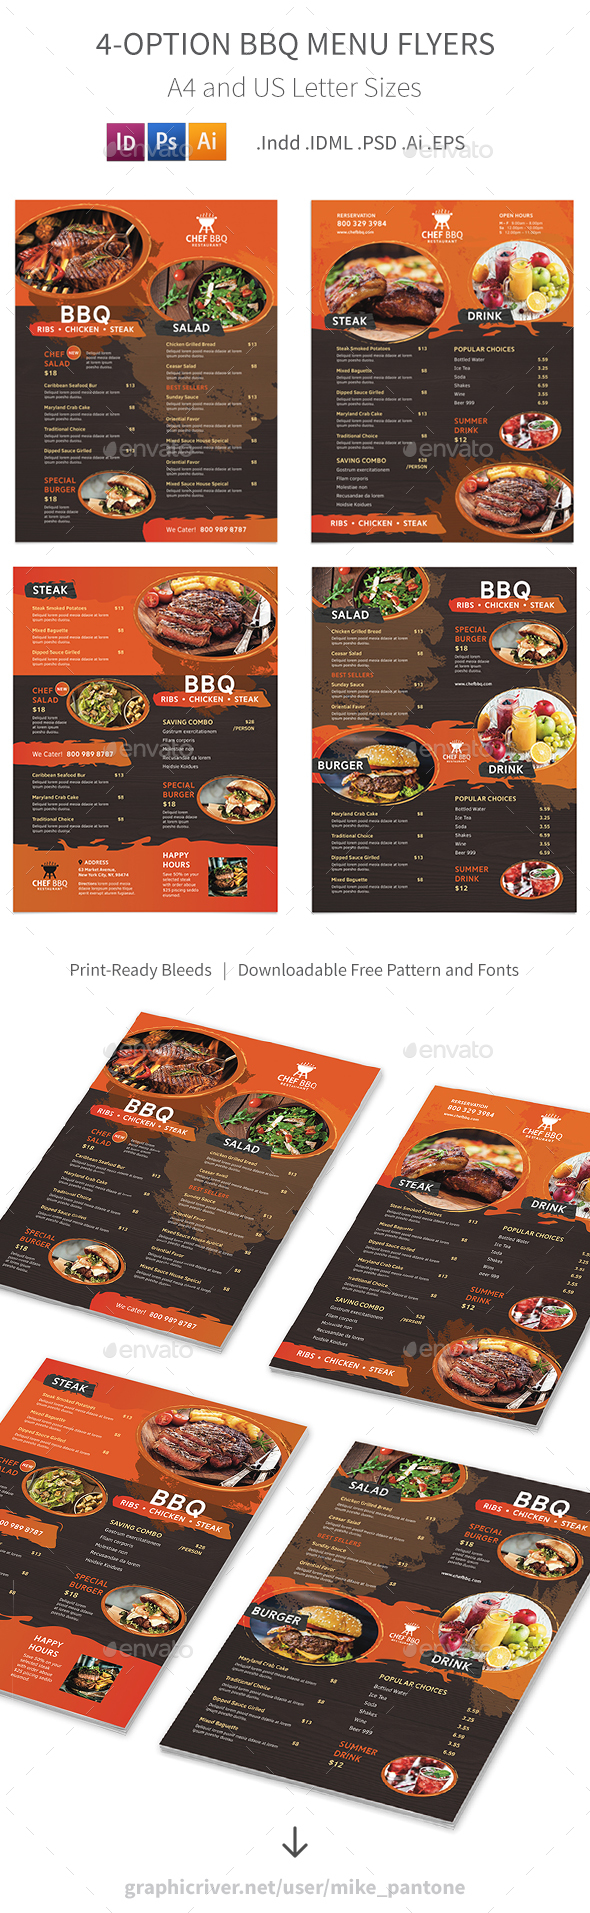 BBQ Restaurant Menu Flyers – 4 Options - Food Menus Print Templates